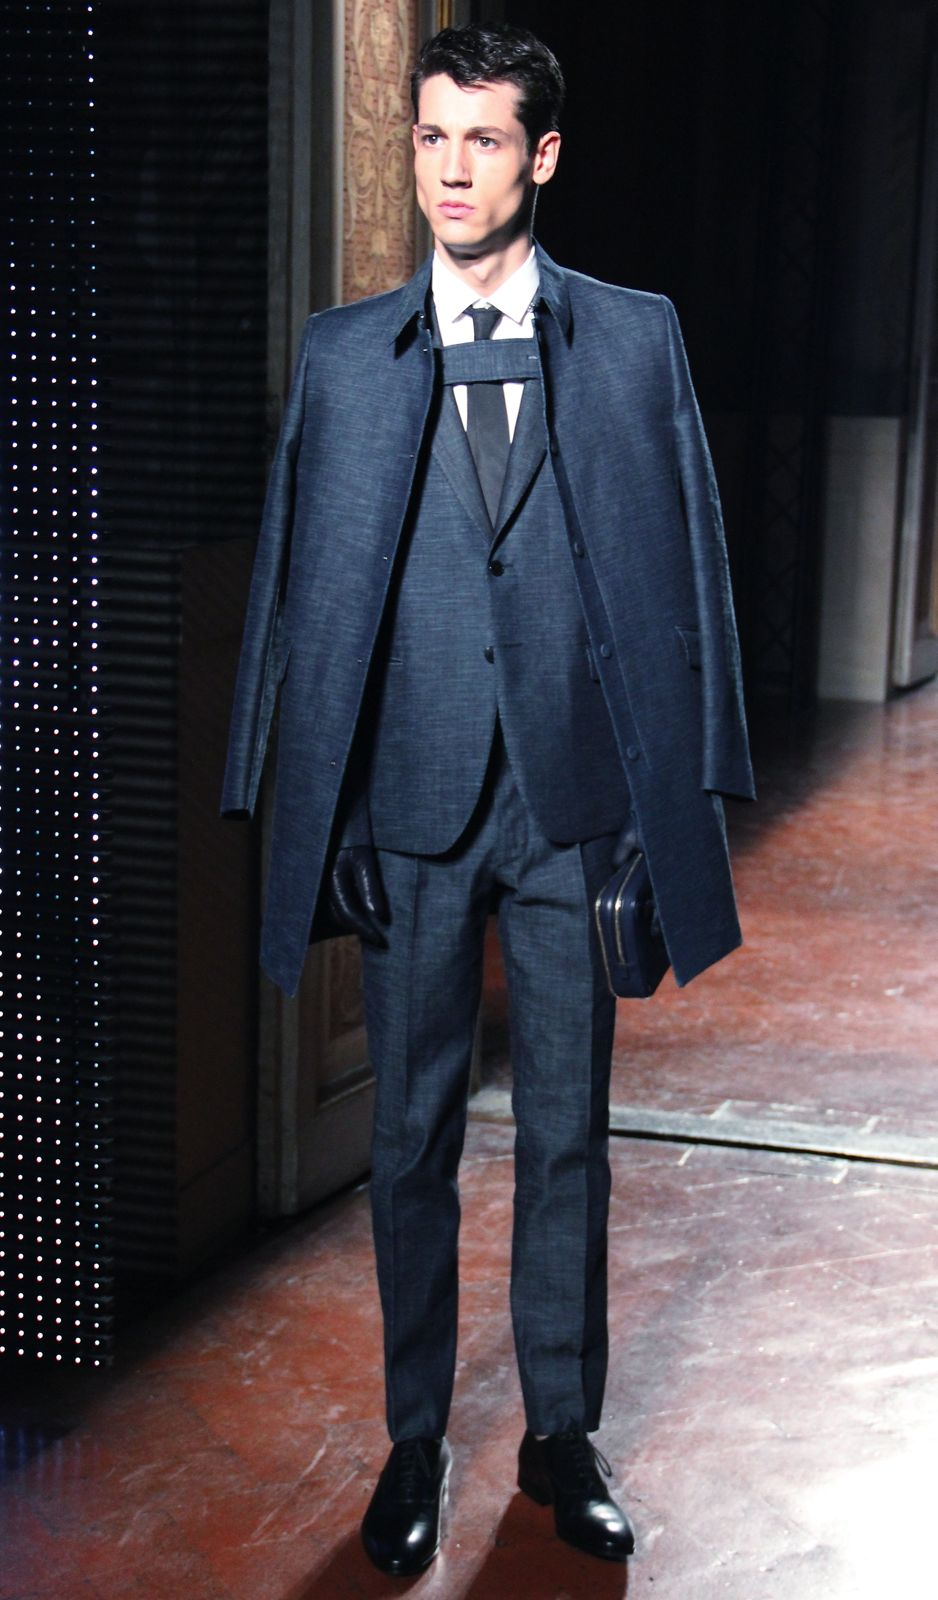 Pitti Immagine Uomo Valentino Men Collection Fall Winter 2012-13